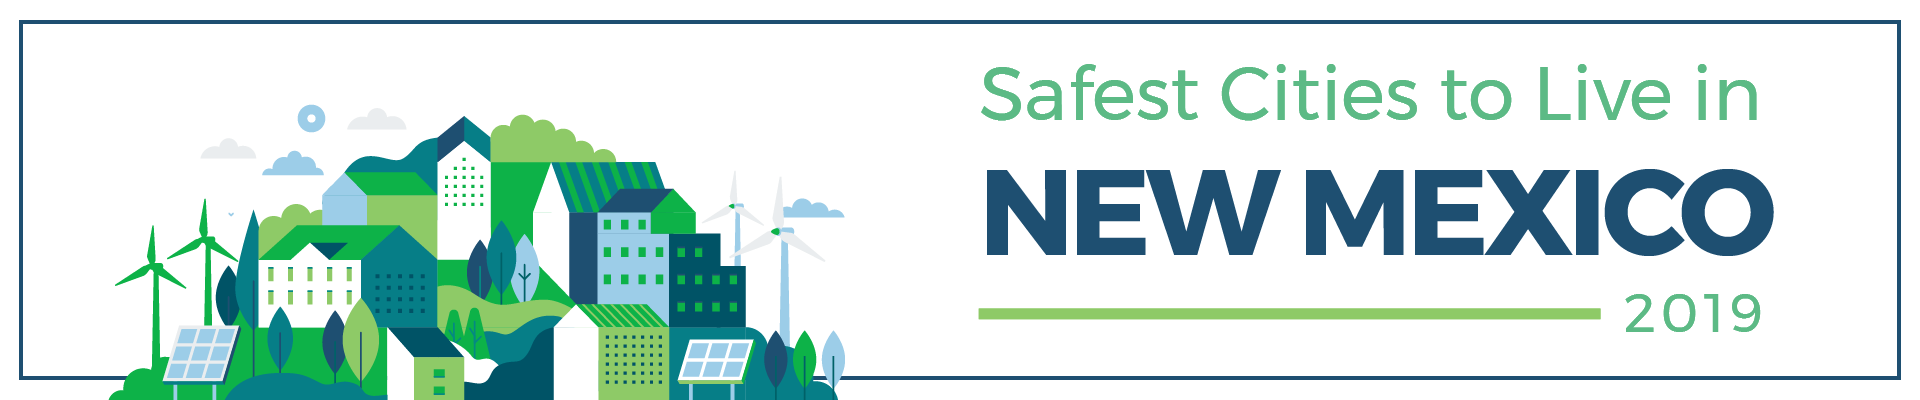 header - safest_cities_new_mexico_2019